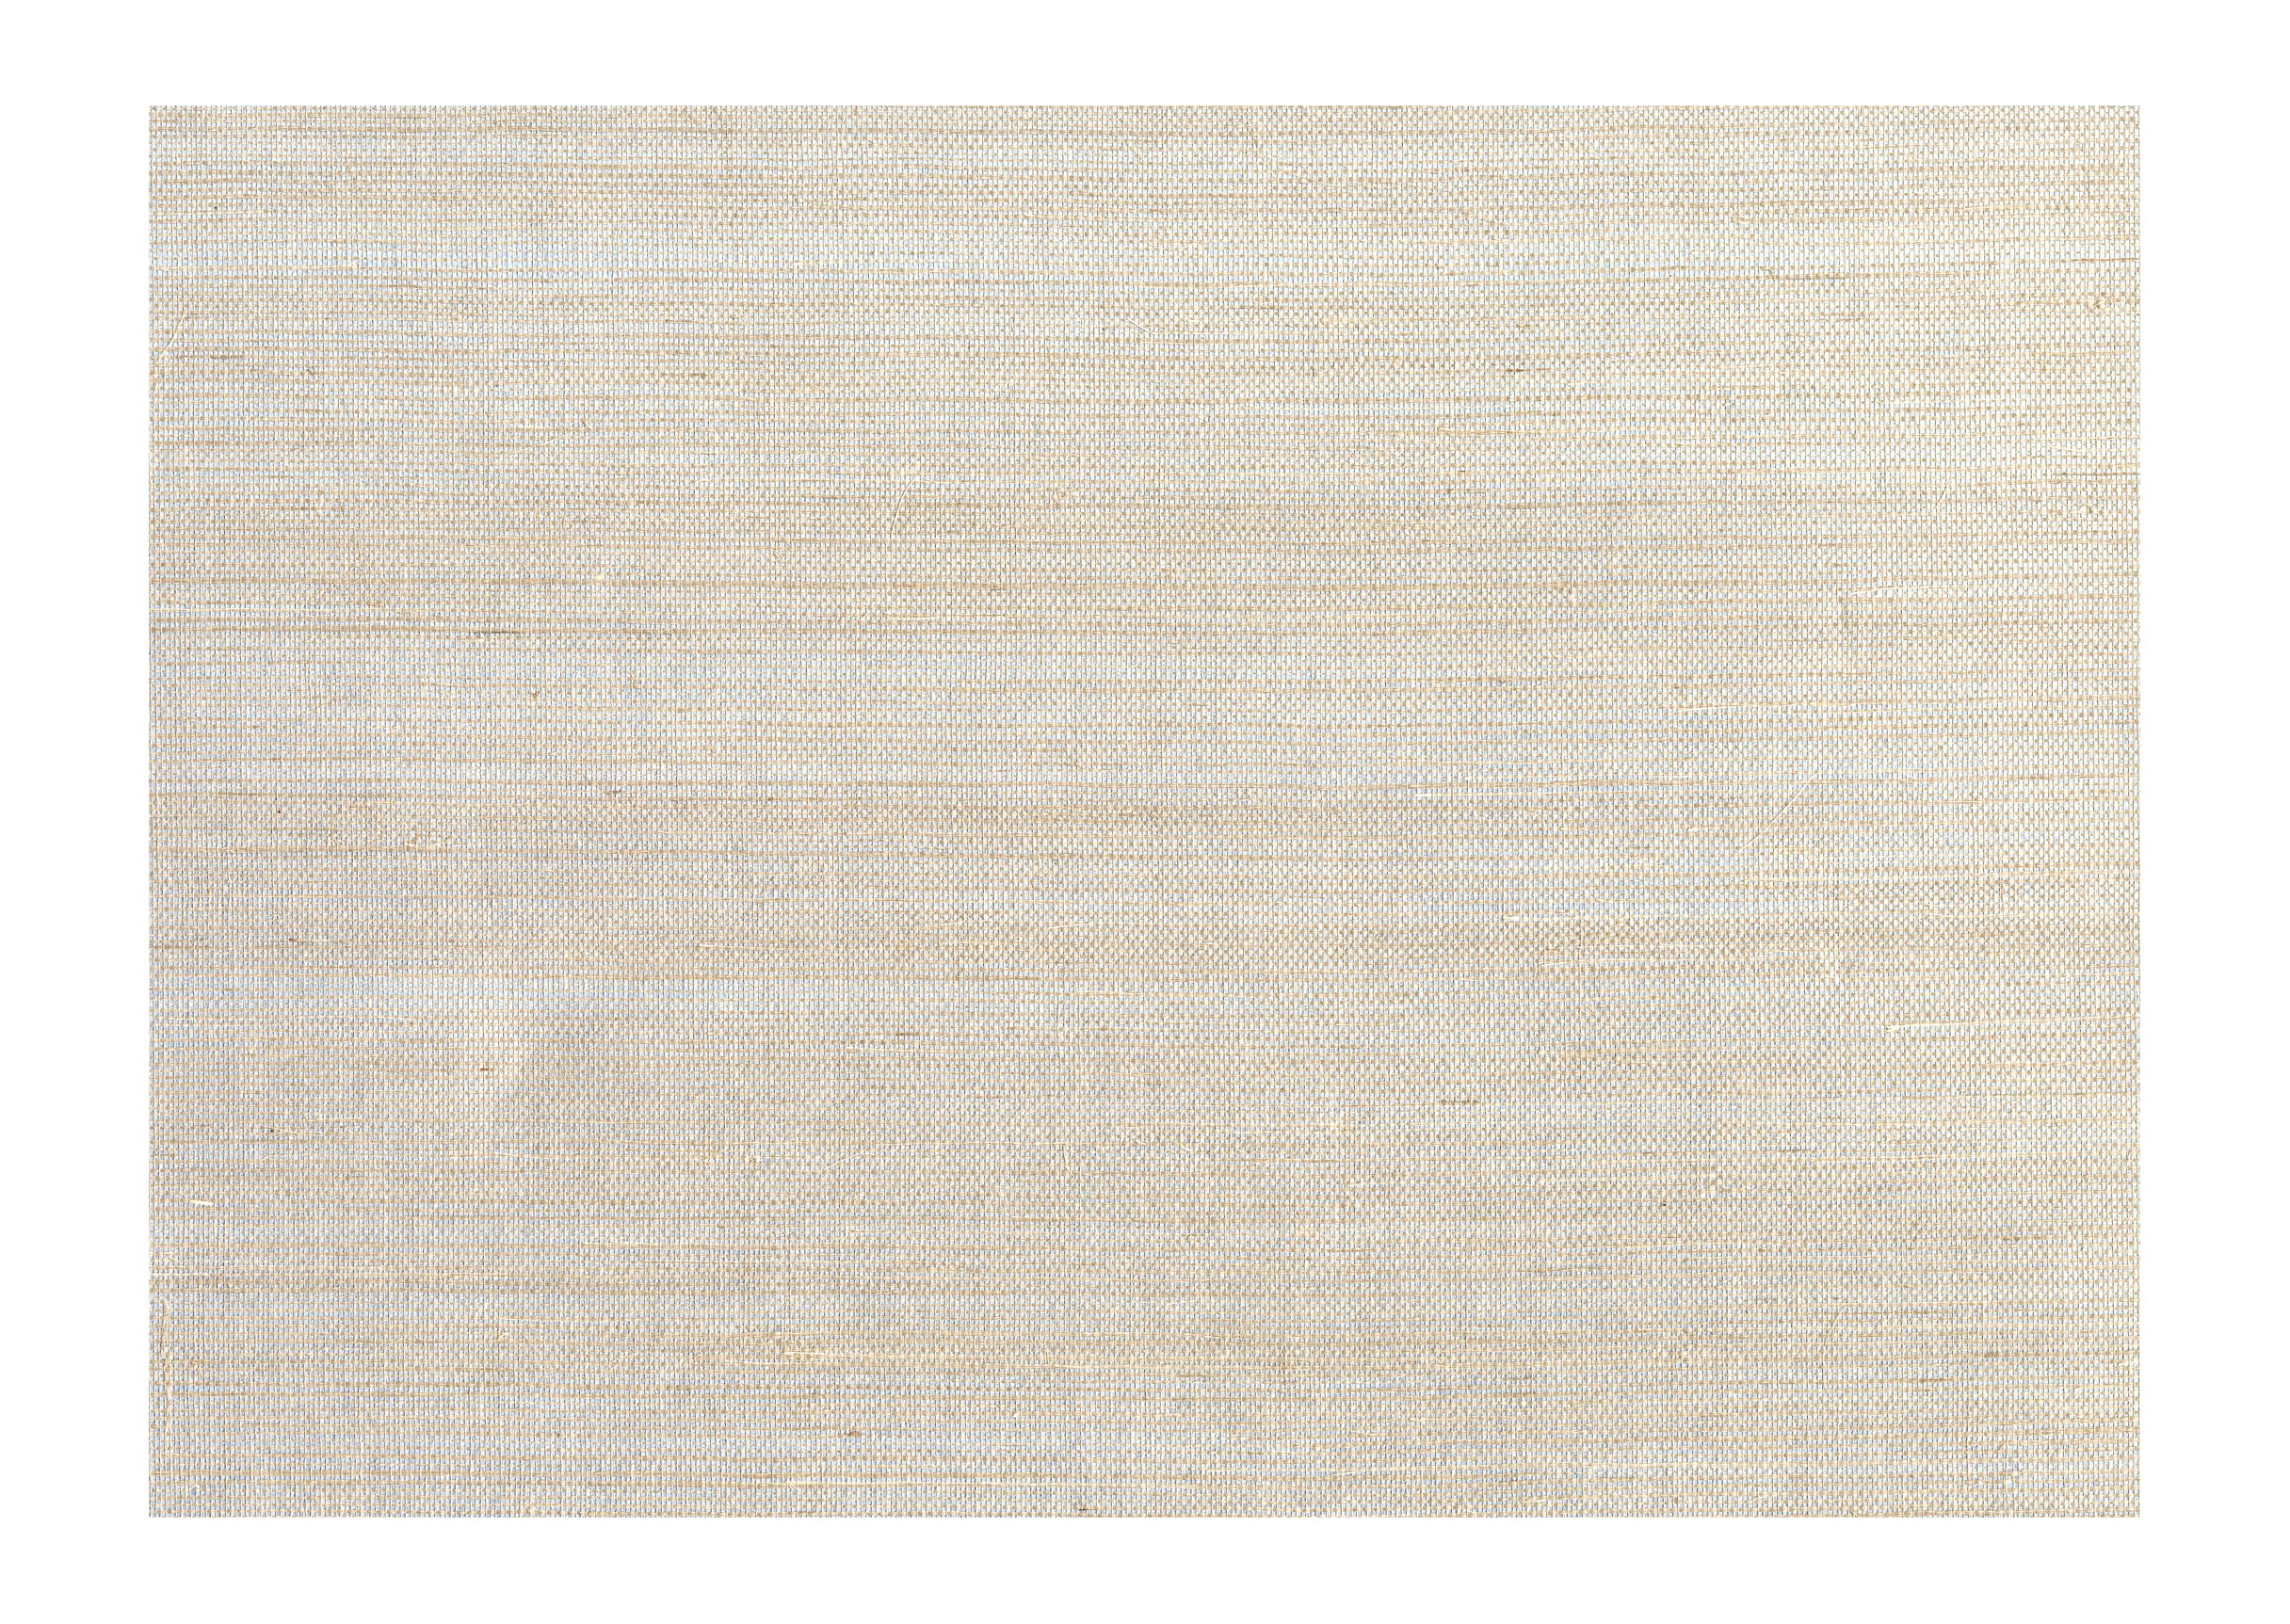 York Wallcoverings GC0700 Candice Olson Dimensional Surfaces Metallic Background Grasscloth Wallpaper, Silver Metallic/Sisal by York Wallcoverings